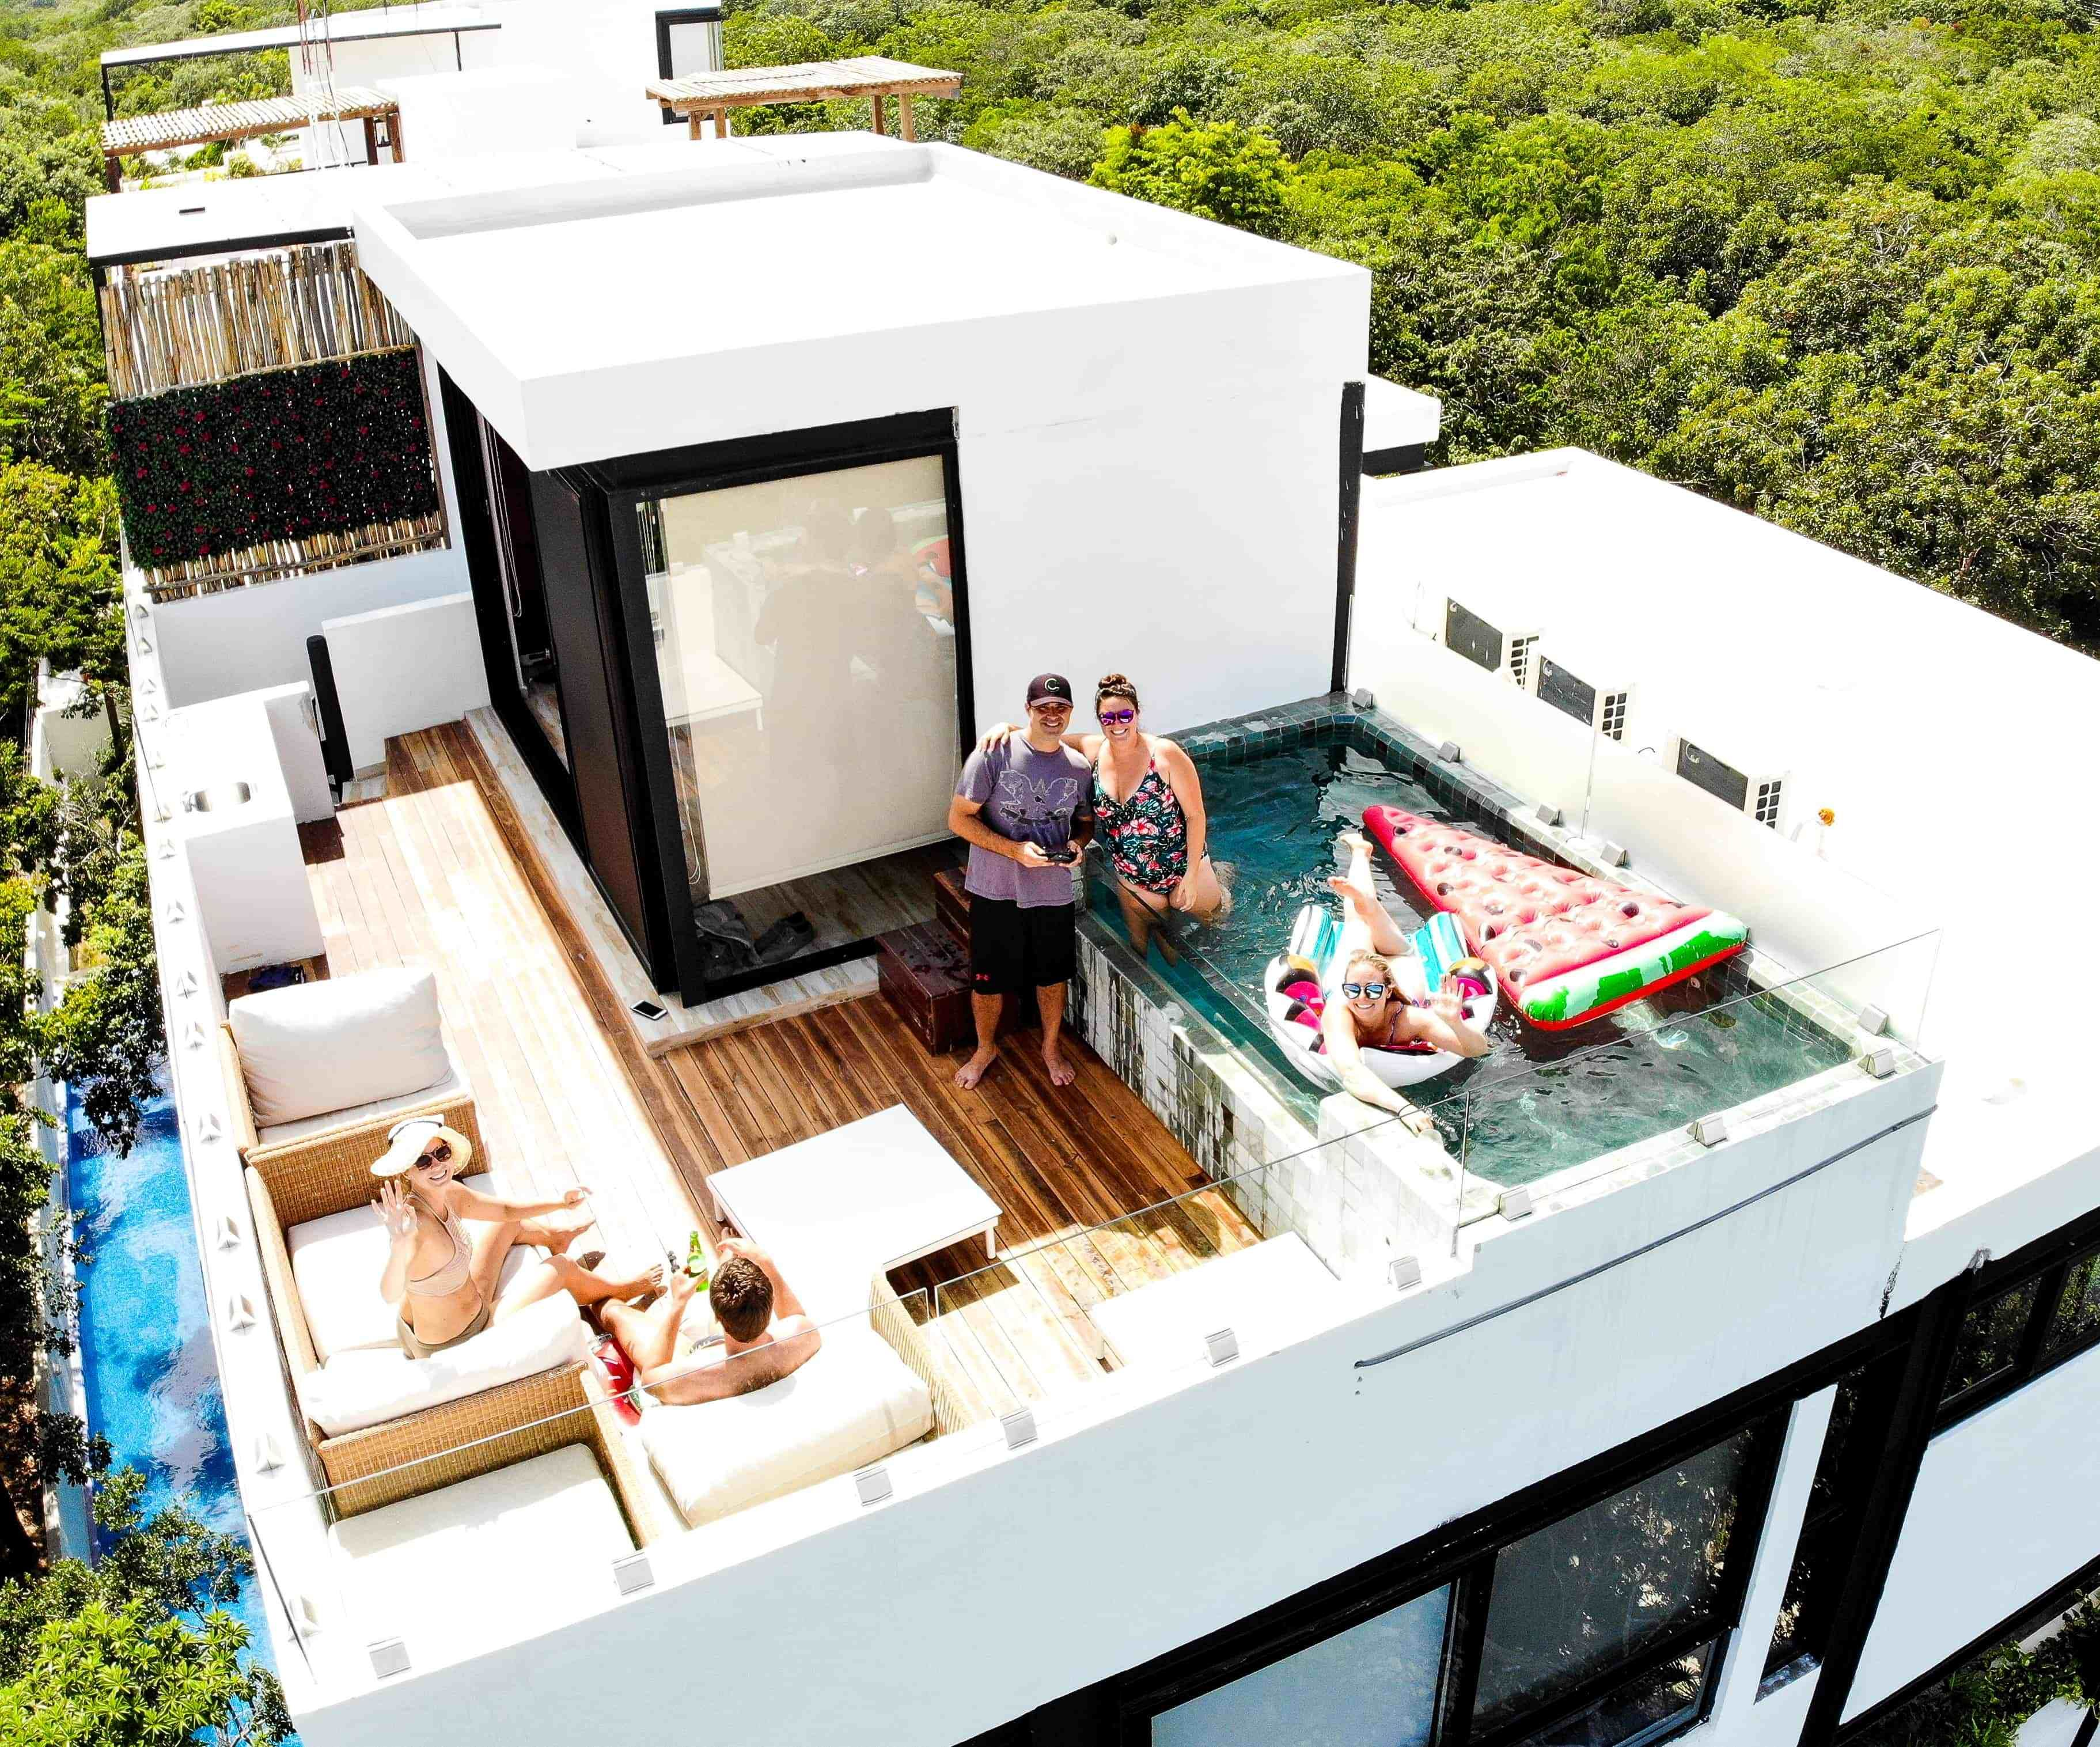 Airbnb Hooked Us Up With This Amazing Penthouse In Tulum Adventurers Guide To One Week In Quintana Roof Terrace Design Rooftop Terrace Design Rooftop Design